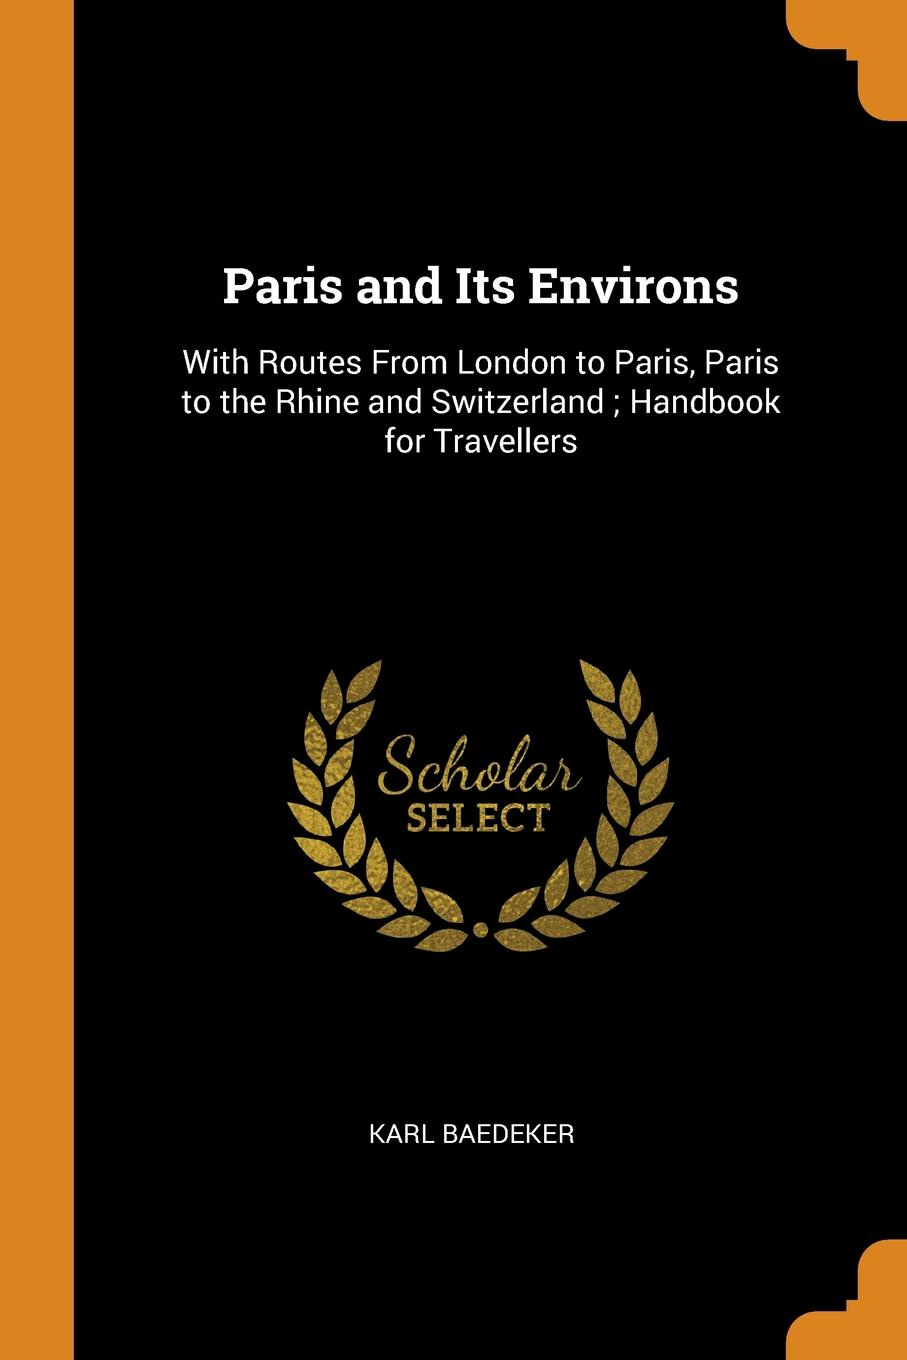 Karl Baedeker Paris and Its Environs. With Routes From London to Paris, Paris to the Rhine and Switzerland ; Handbook for Travellers